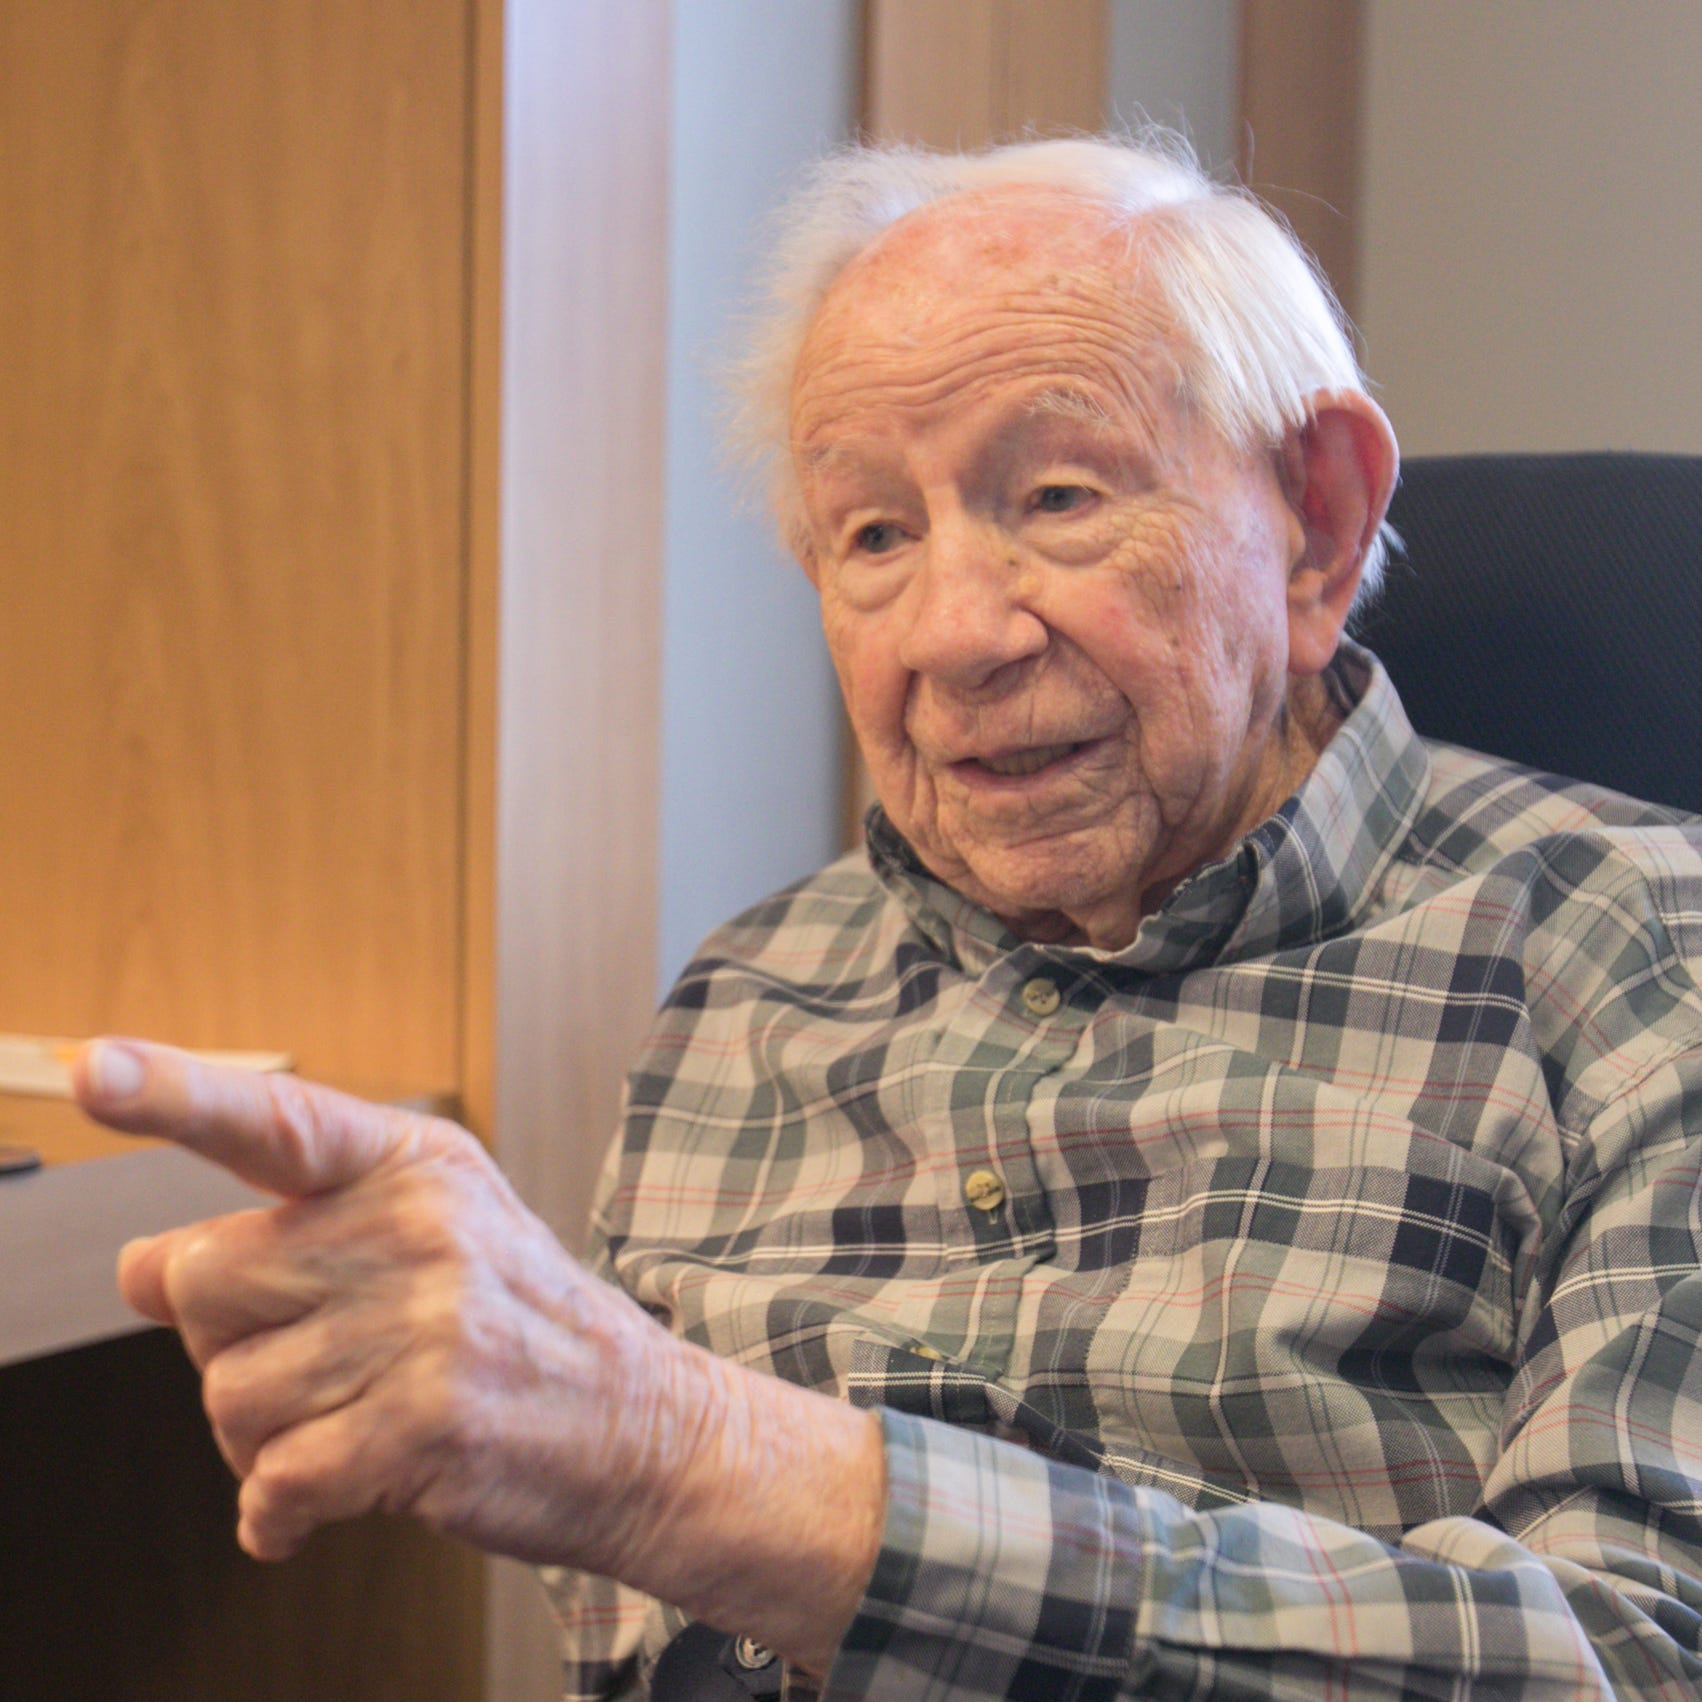 Ed Yoas served in World War II, built a business, raised a family. On Monday he turned 105